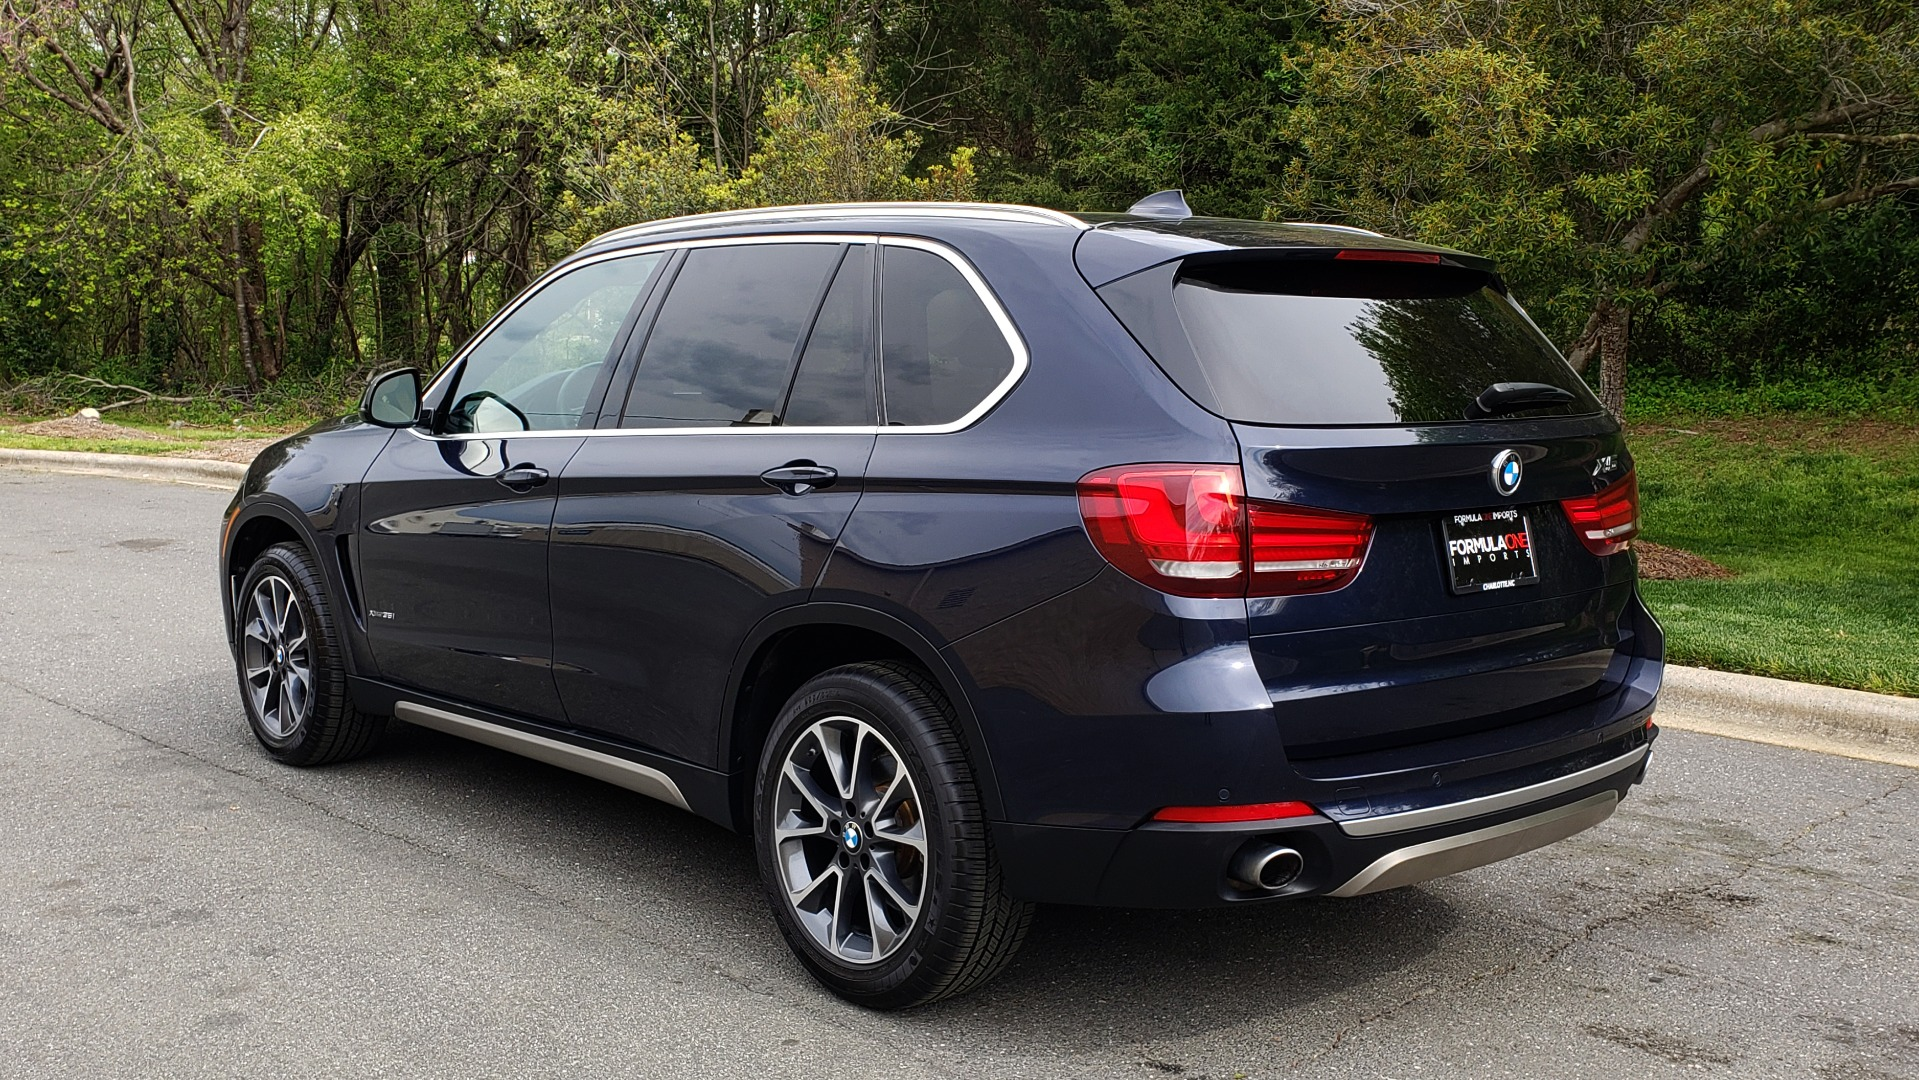 Used 2017 BMW X5 XDRIVE35I PREMIUM / NAV / SUNROOF/ CLD WTHR / HARMAN/KARDON / REARVIEW for sale $30,595 at Formula Imports in Charlotte NC 28227 3